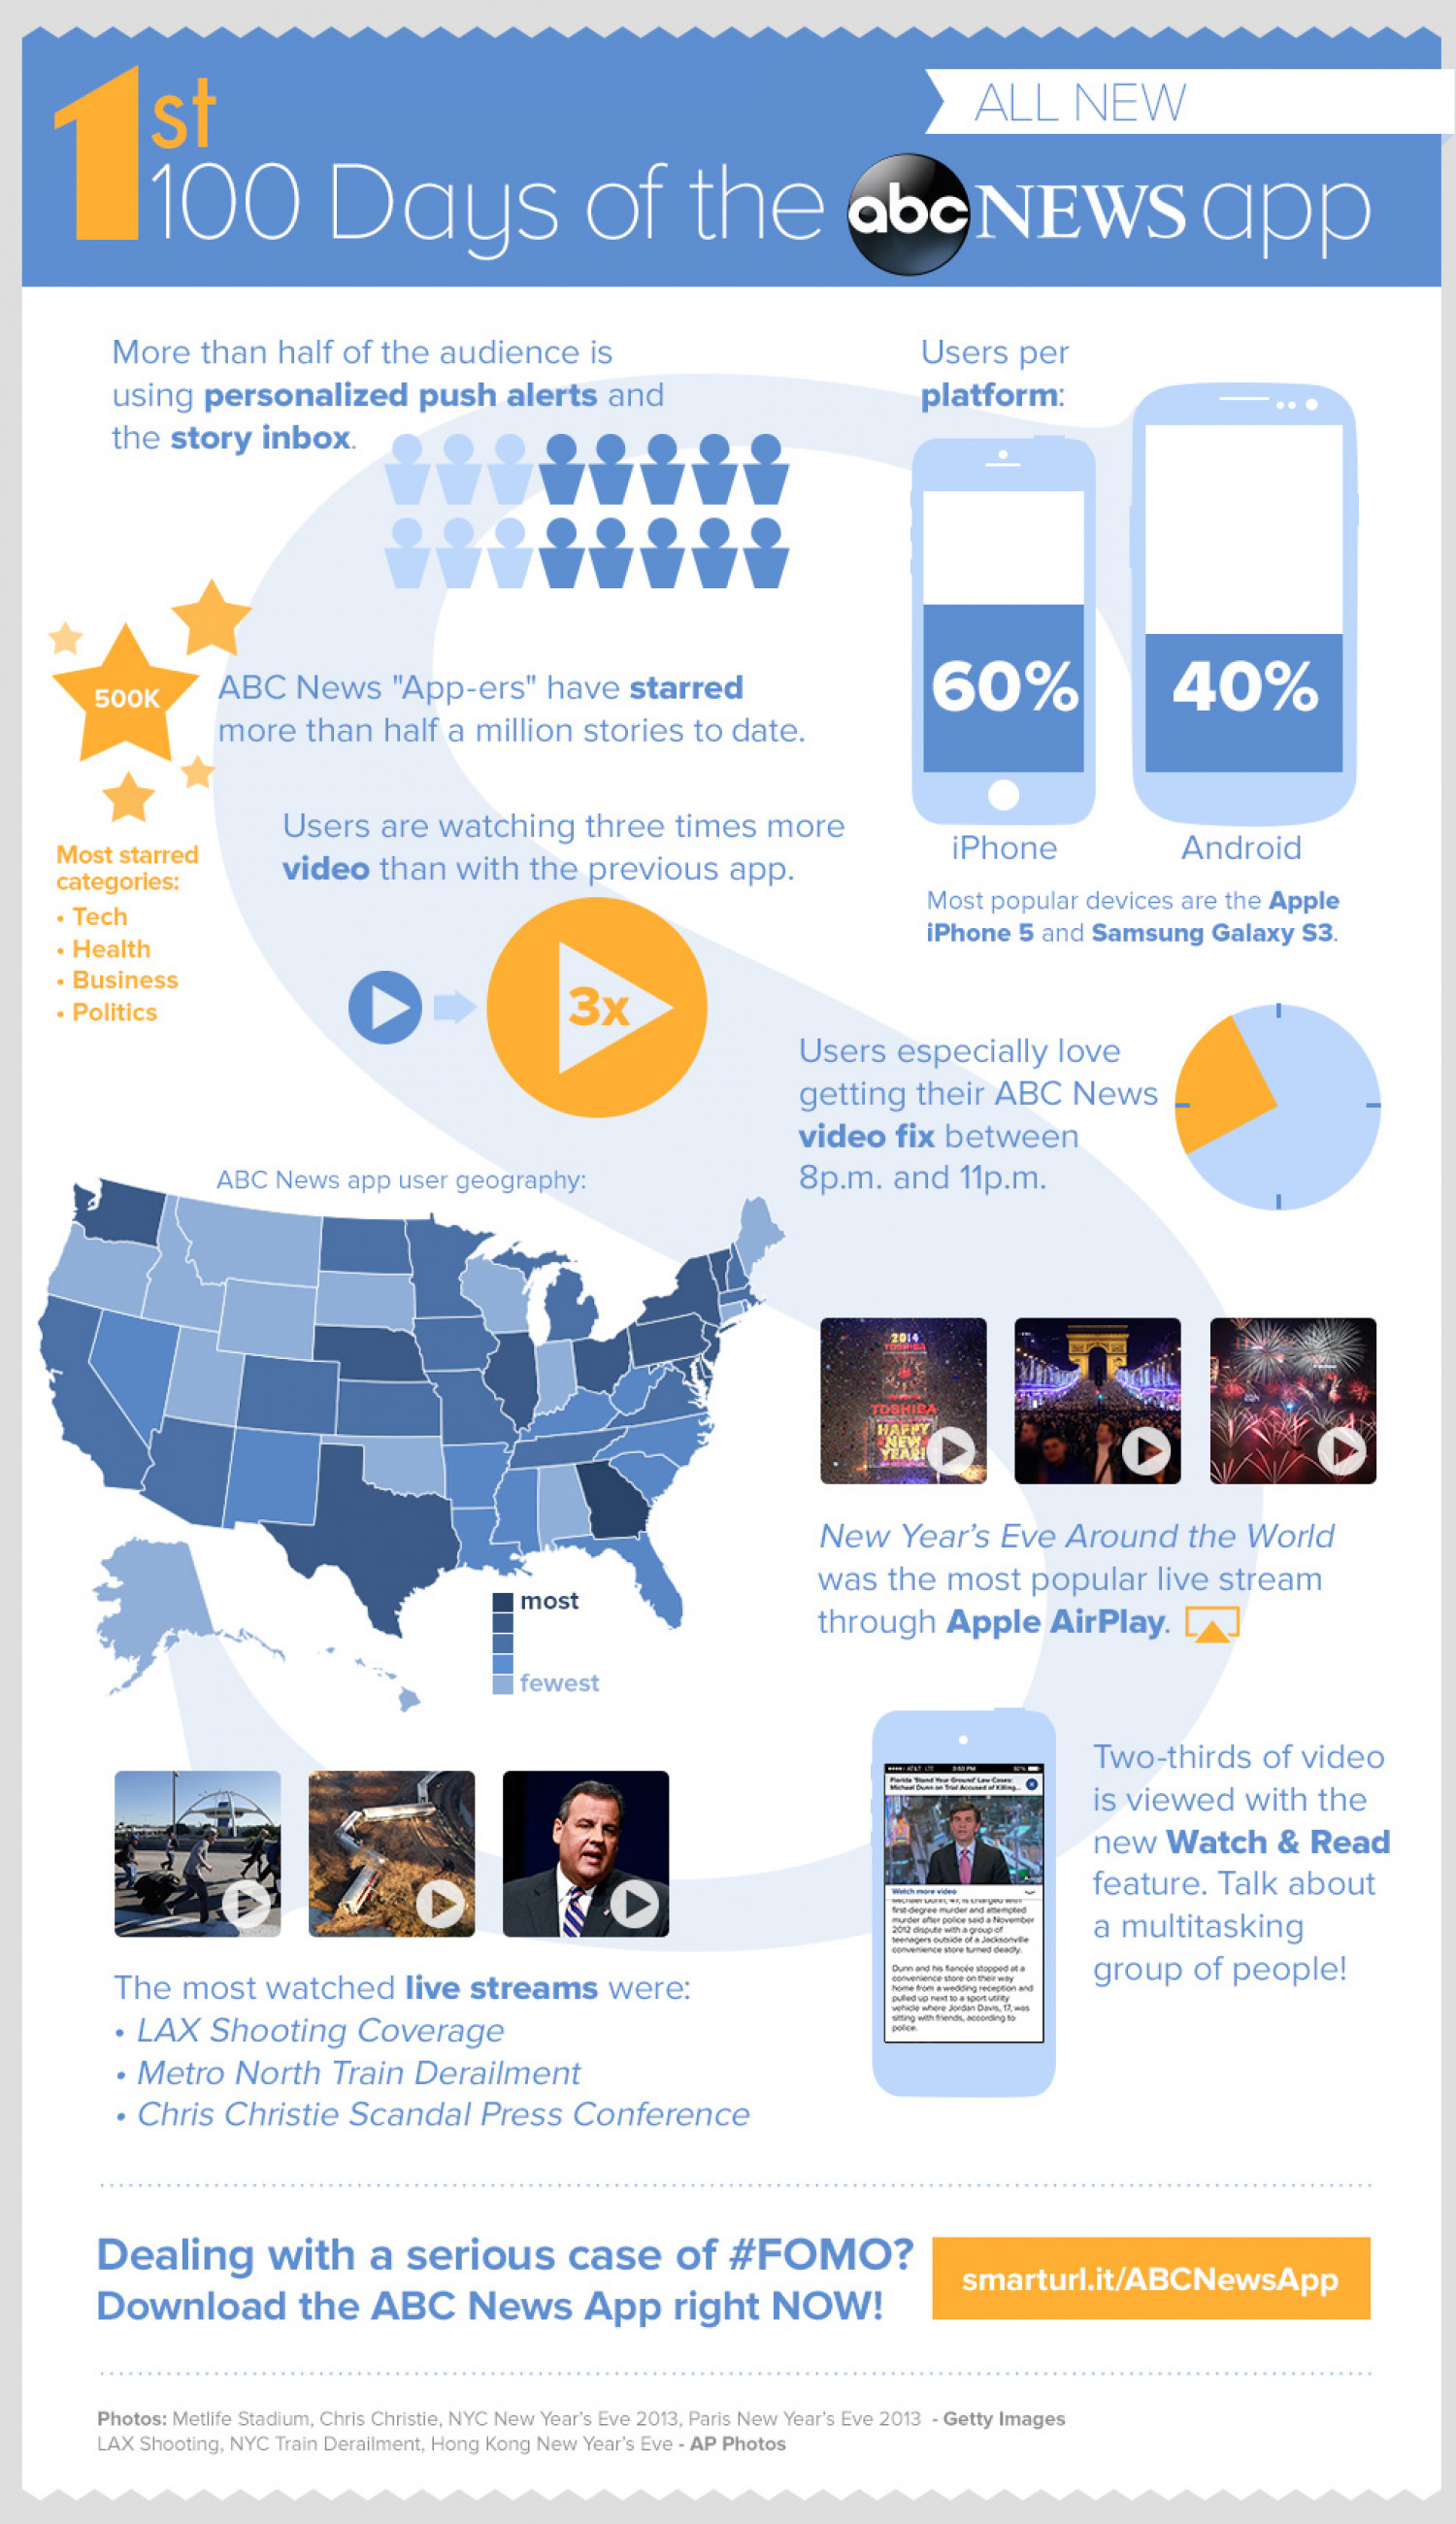 1st 100 Days of the ALL NEW ABC News App  Infographic